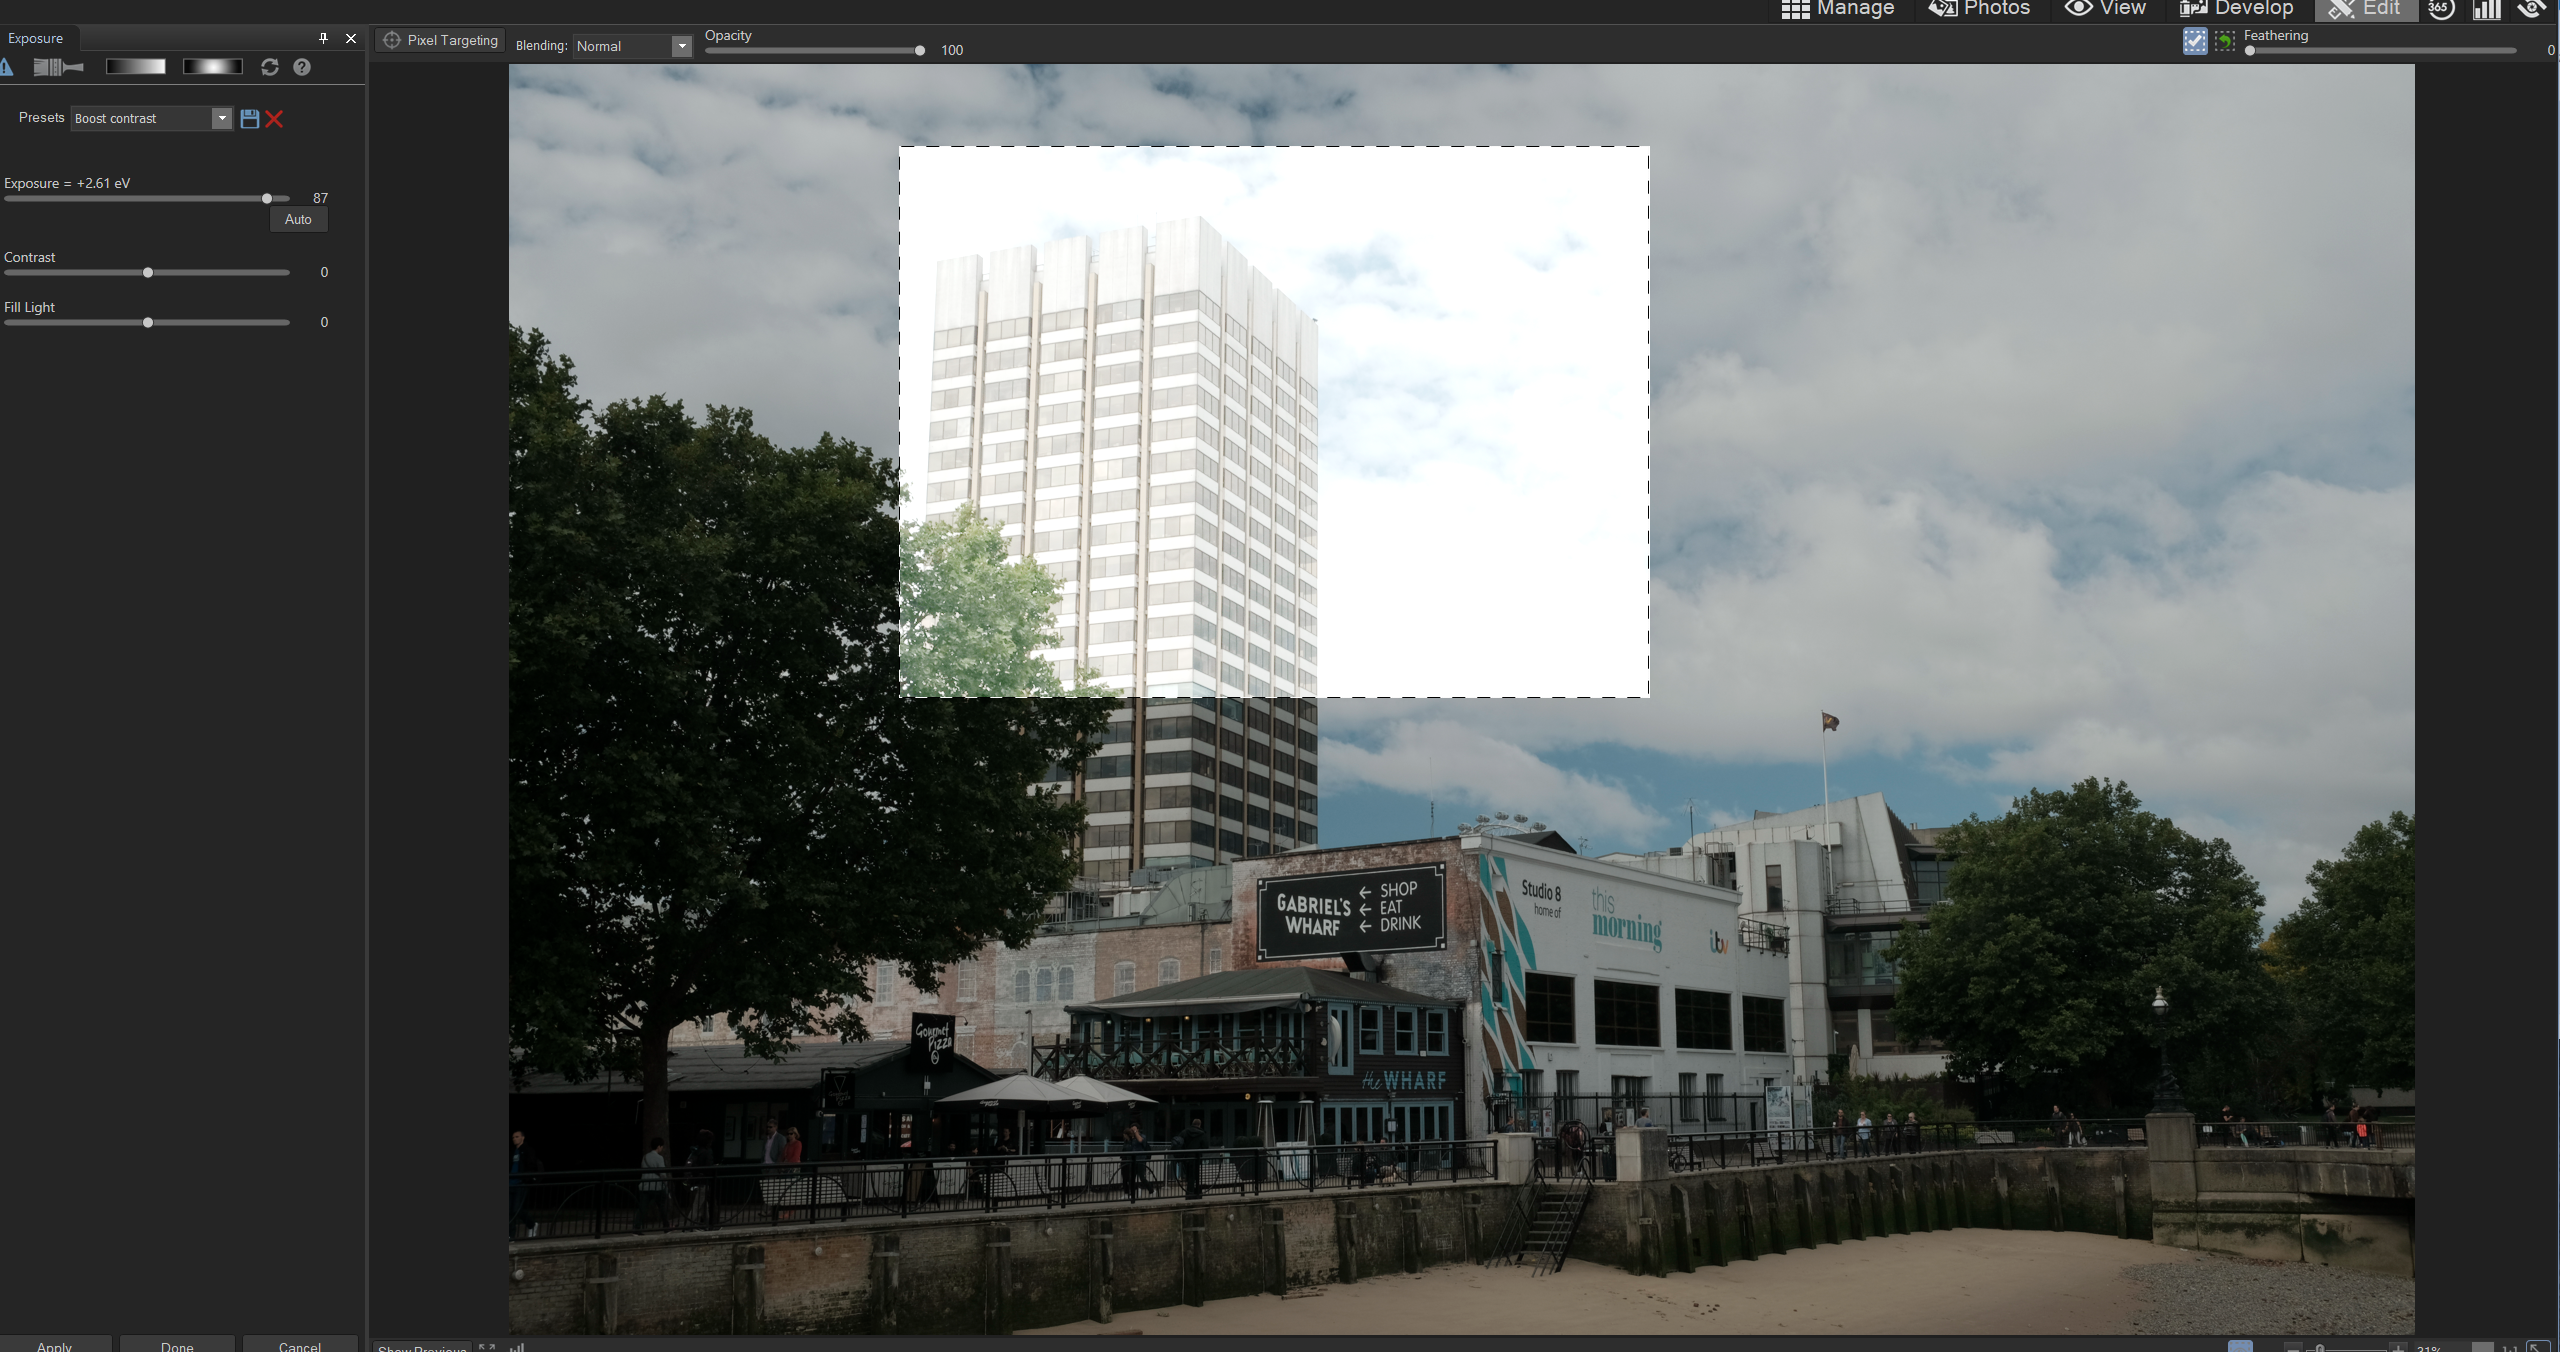 5 Image Editing Apps That Every Mobile Photographer Will Love